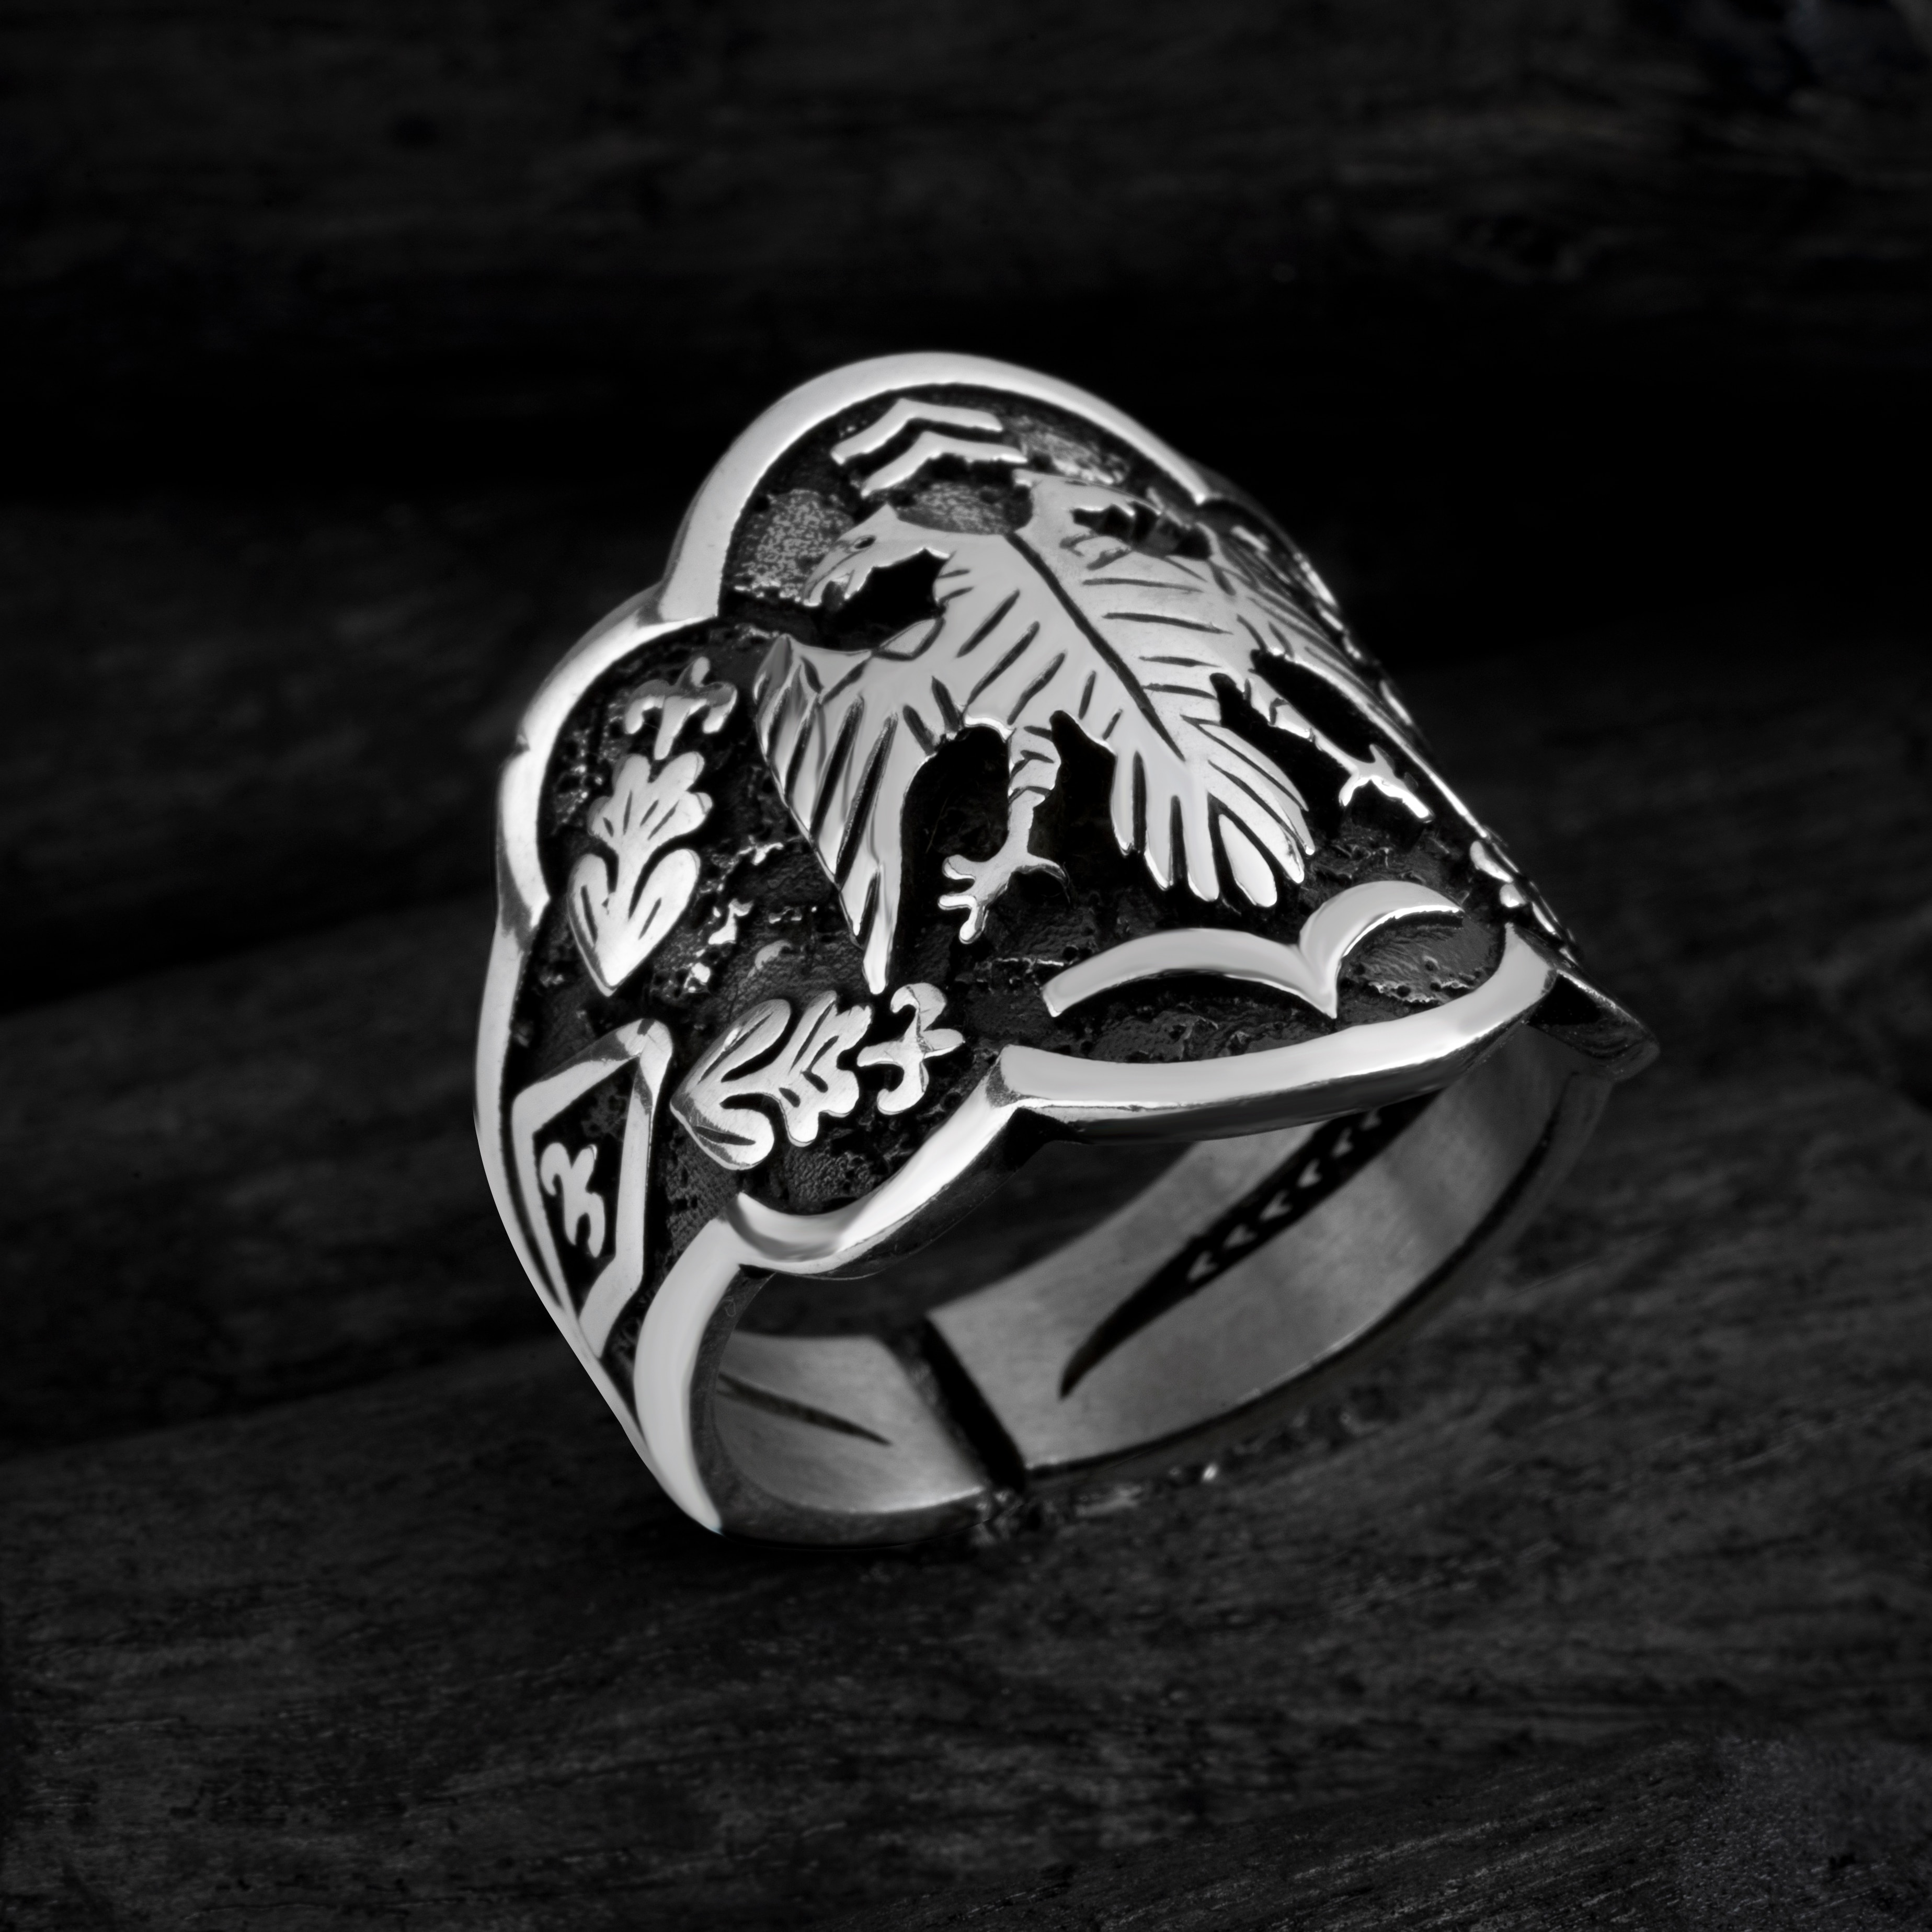 High-quality 925 Sterling Silver Jewelry made in Turkey (Ertugrul ring), Made in Turkey in a luxurious way for men with gift